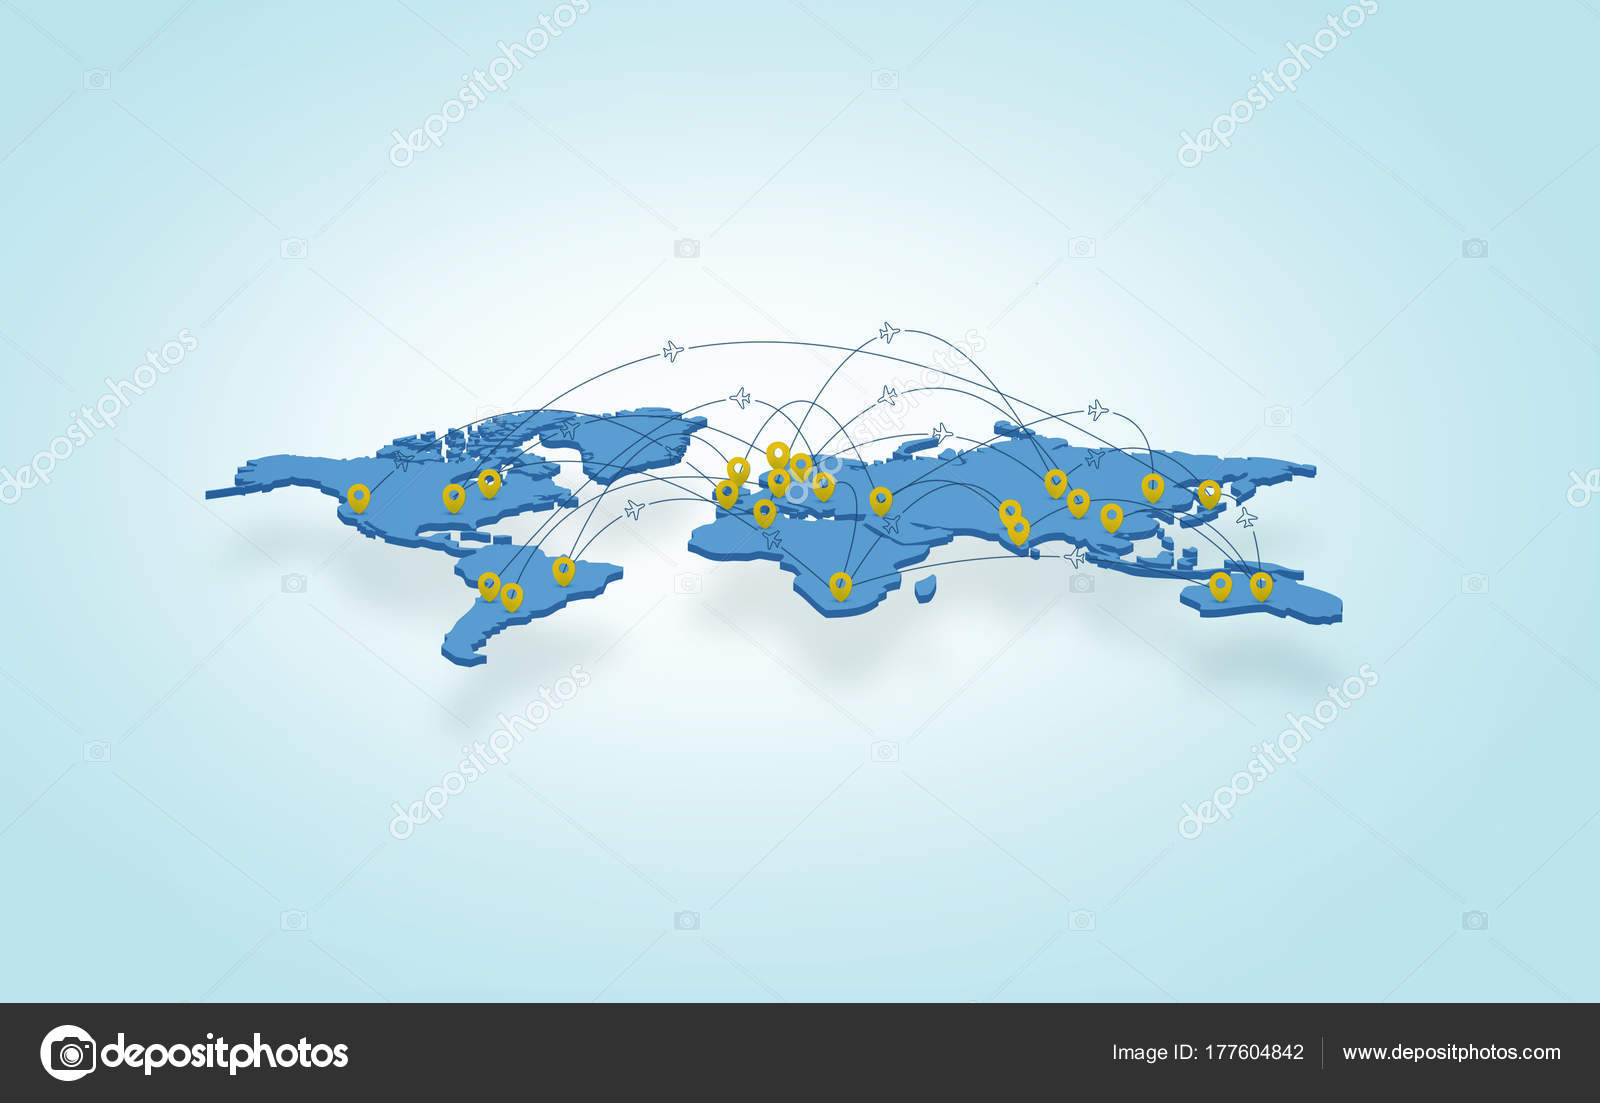 Illustration soil slice blue world map plane route city pins stock 3d illustration of a soil slice blue world map with plane route and city pins on light background photo by russian photo gumiabroncs Gallery